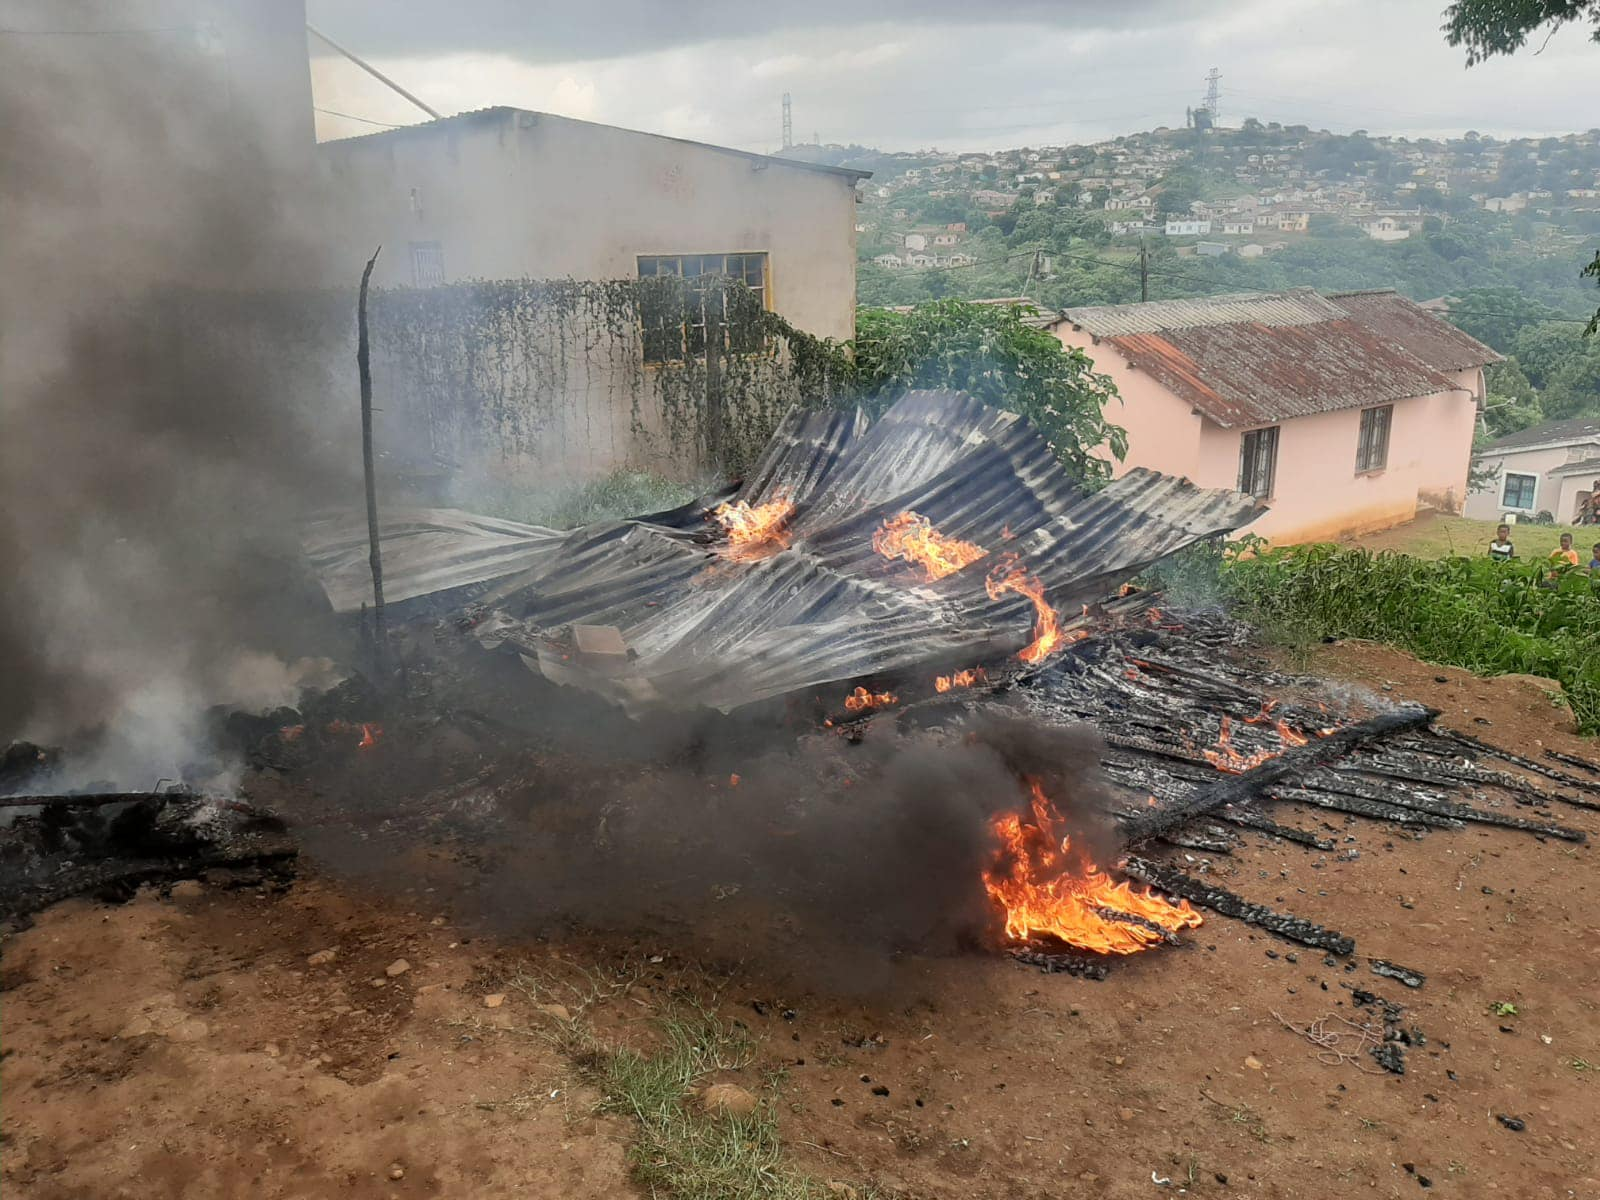 House structure destroyed in fire in Waterloo, KZN